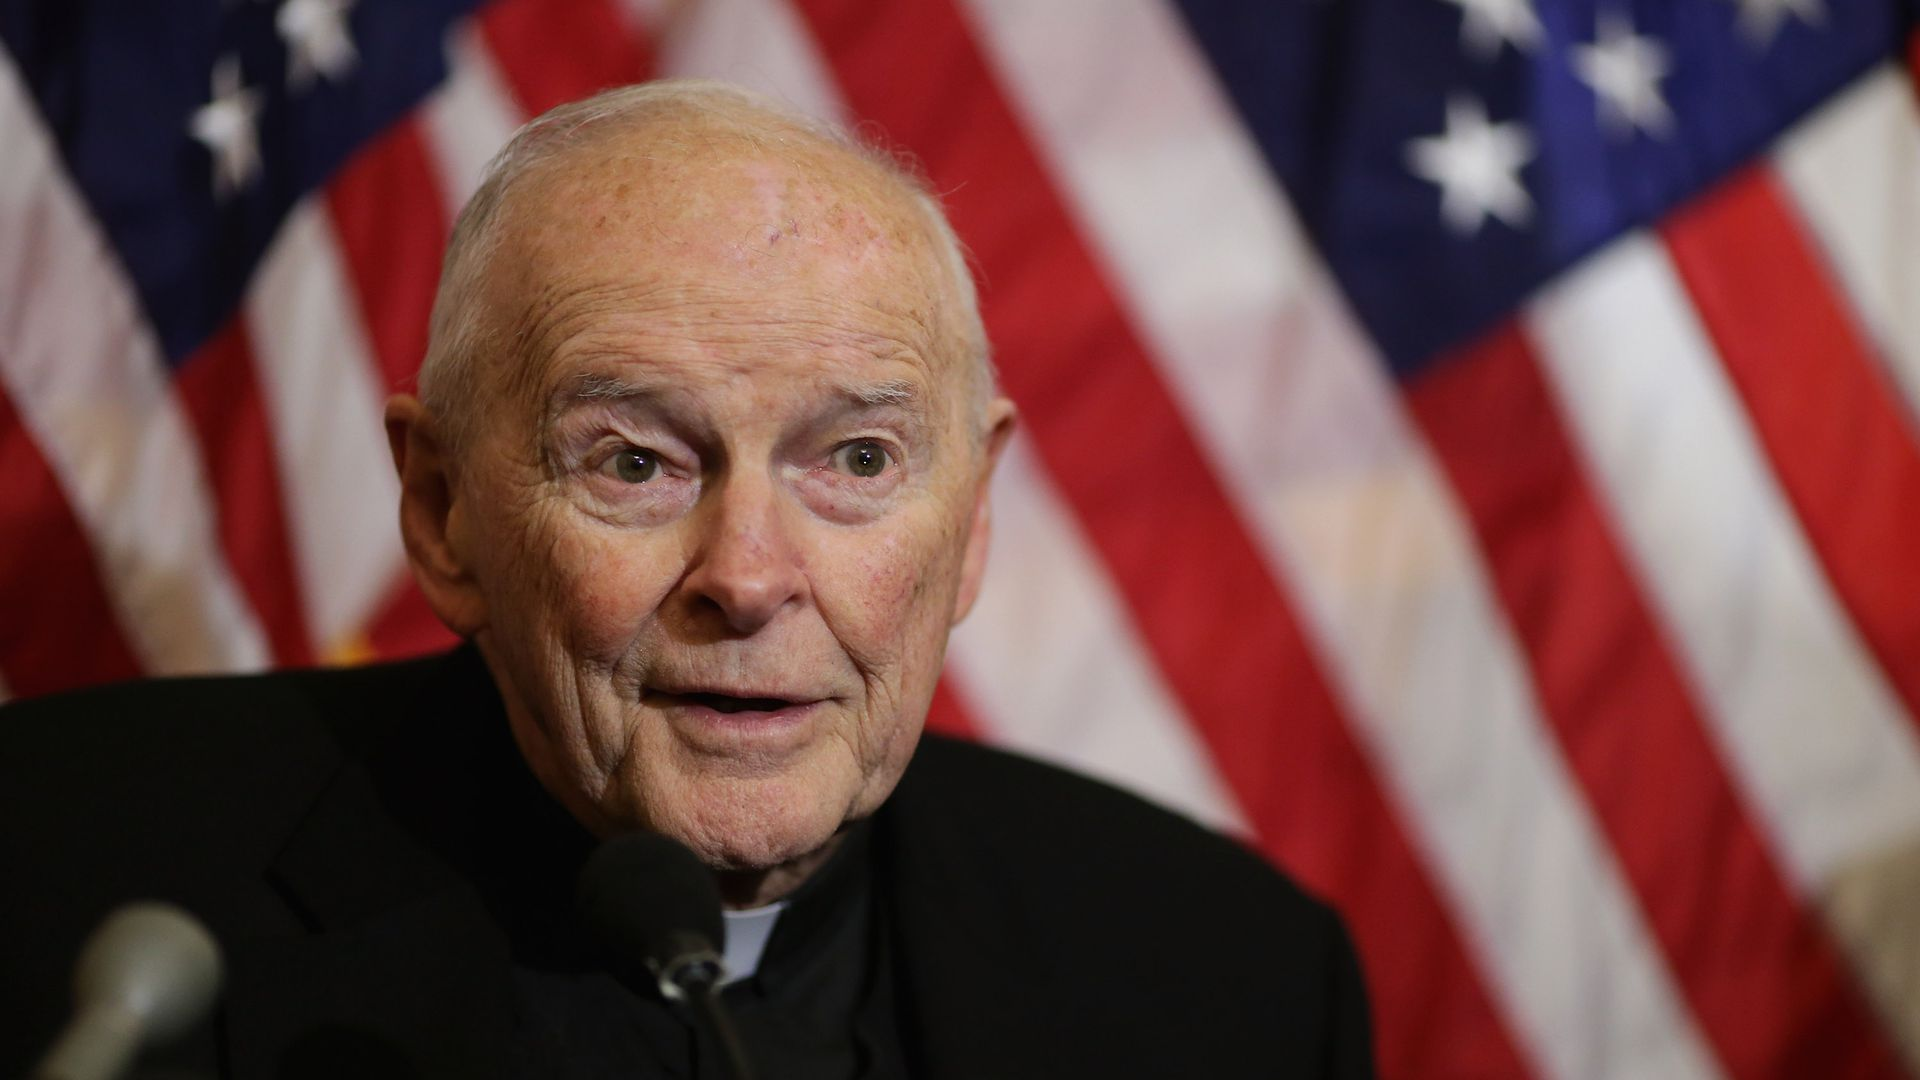 Pope defrocks former D.C. Cardinal Theodore McCarrick over sex abuse